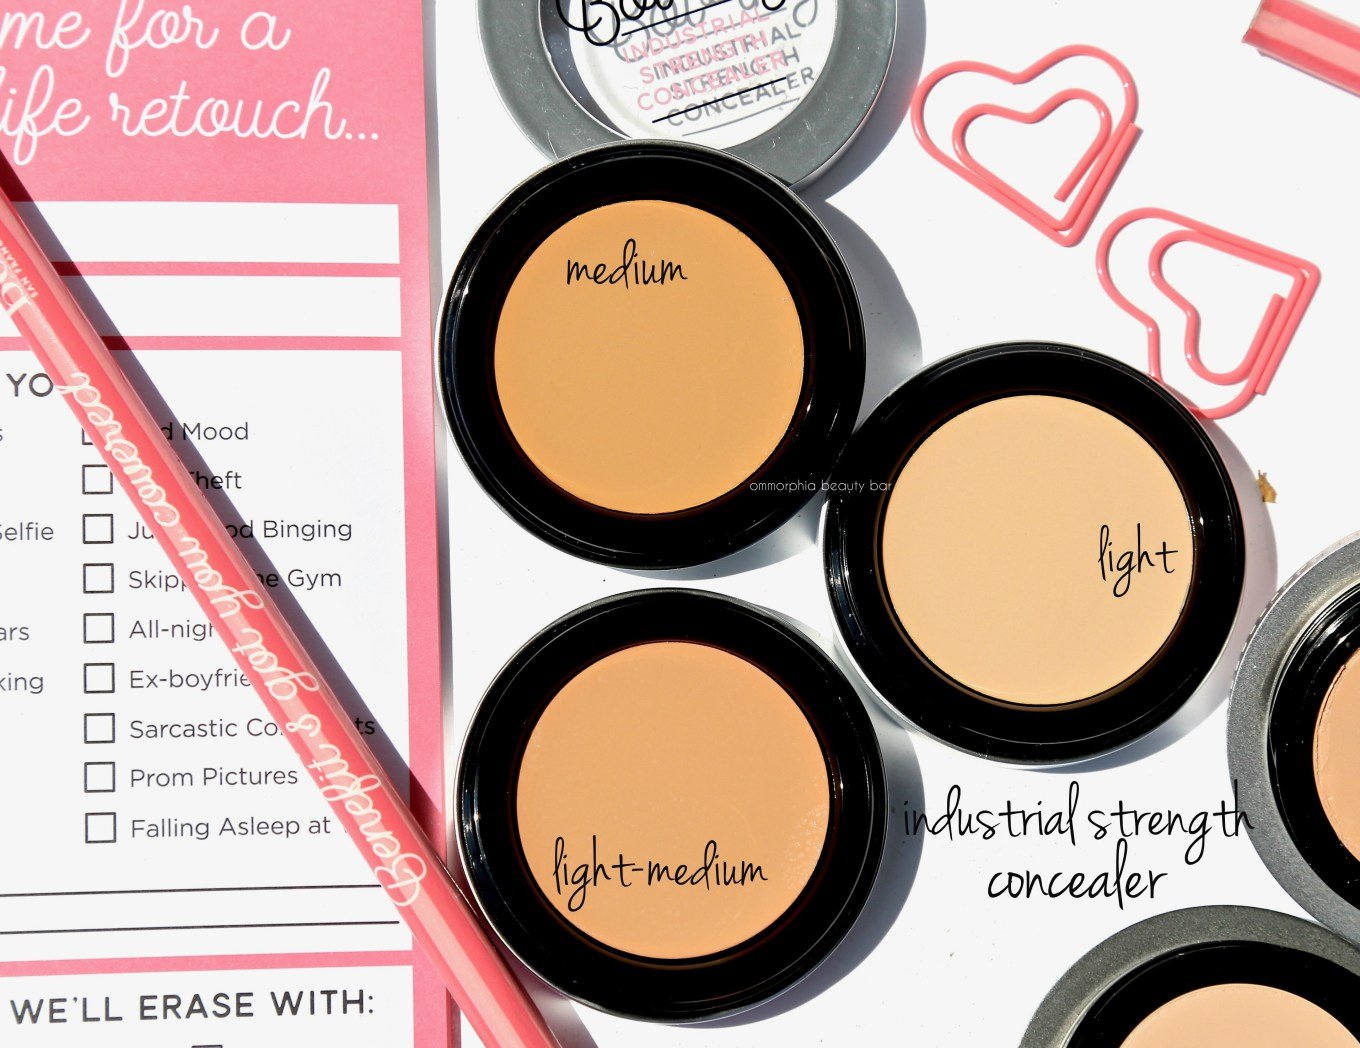 Benefit-Boiing-Industrial-Strength-Concealers